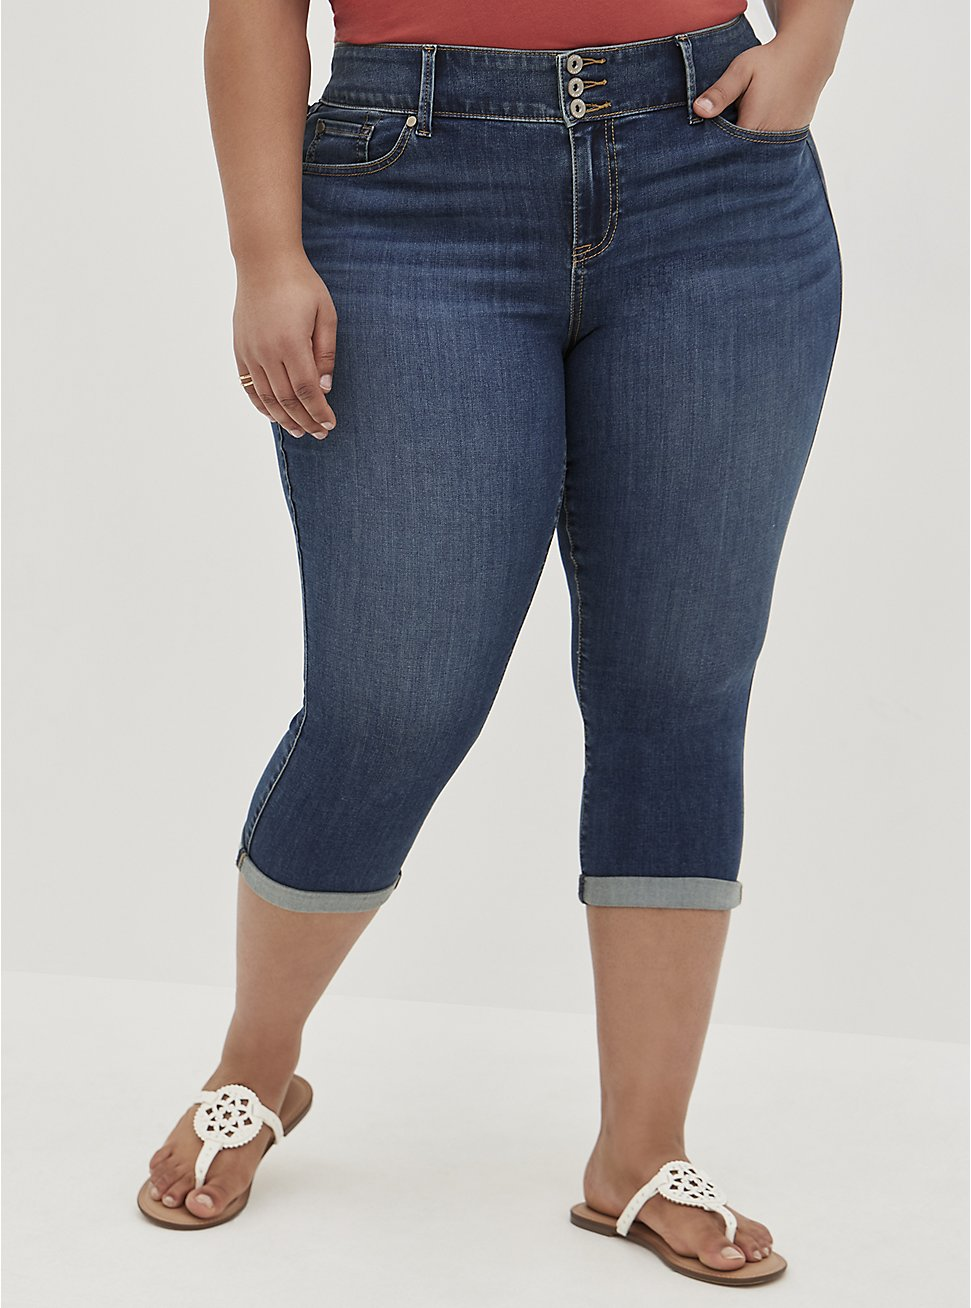 Crop Jegging - Super Soft Medium Wash, BLUE GROTTO, hi-res